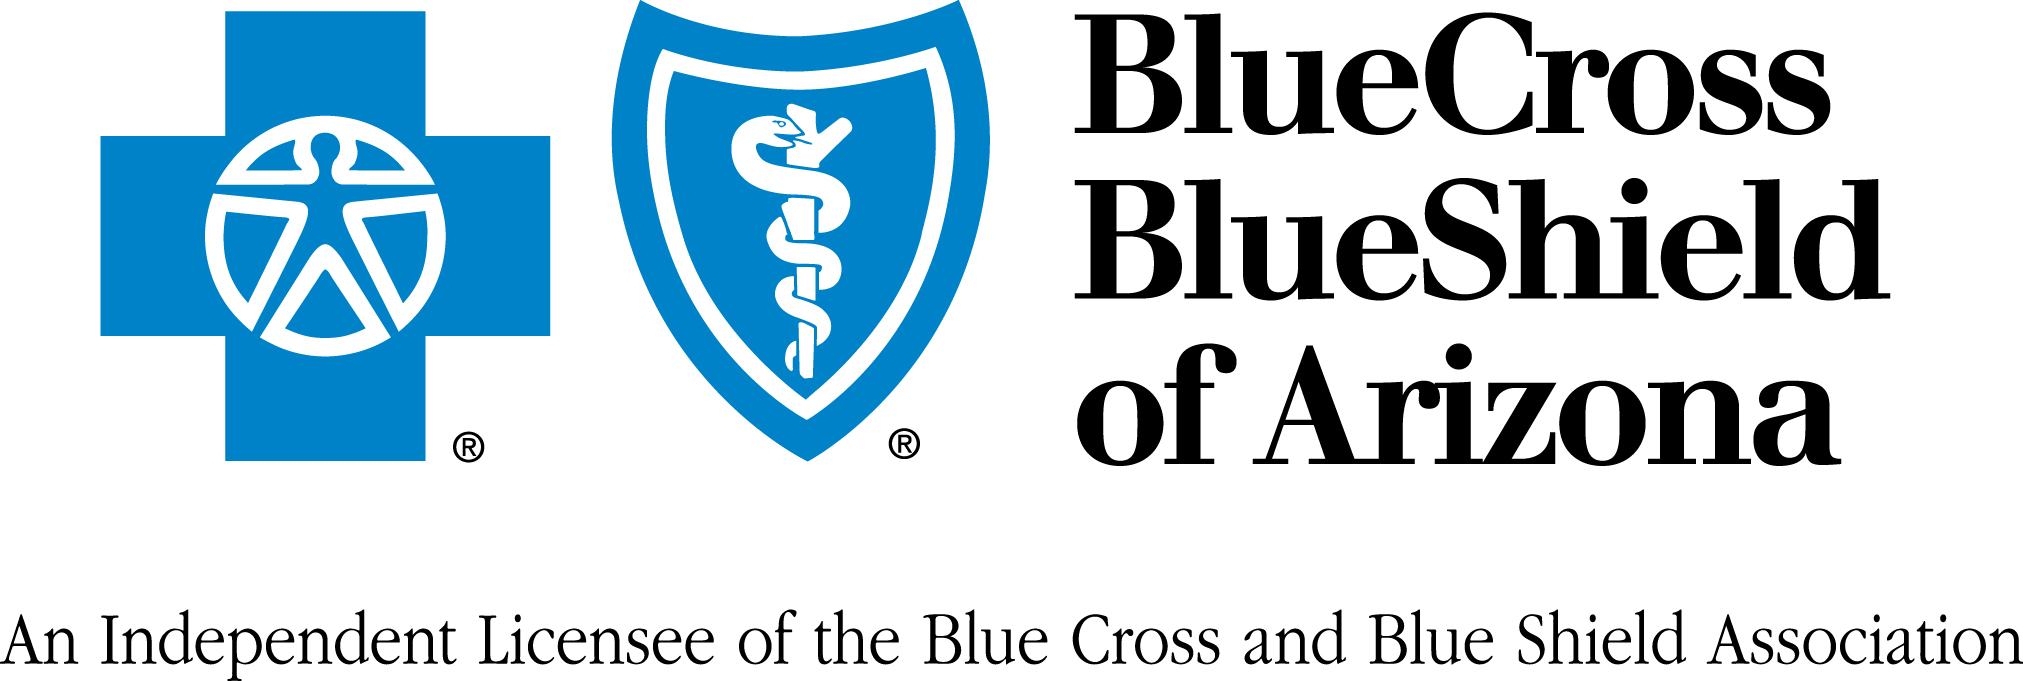 Blue Cross Blue Shield of Arizona, An independent Licensee of the Blue Cross and Blue Shield Association